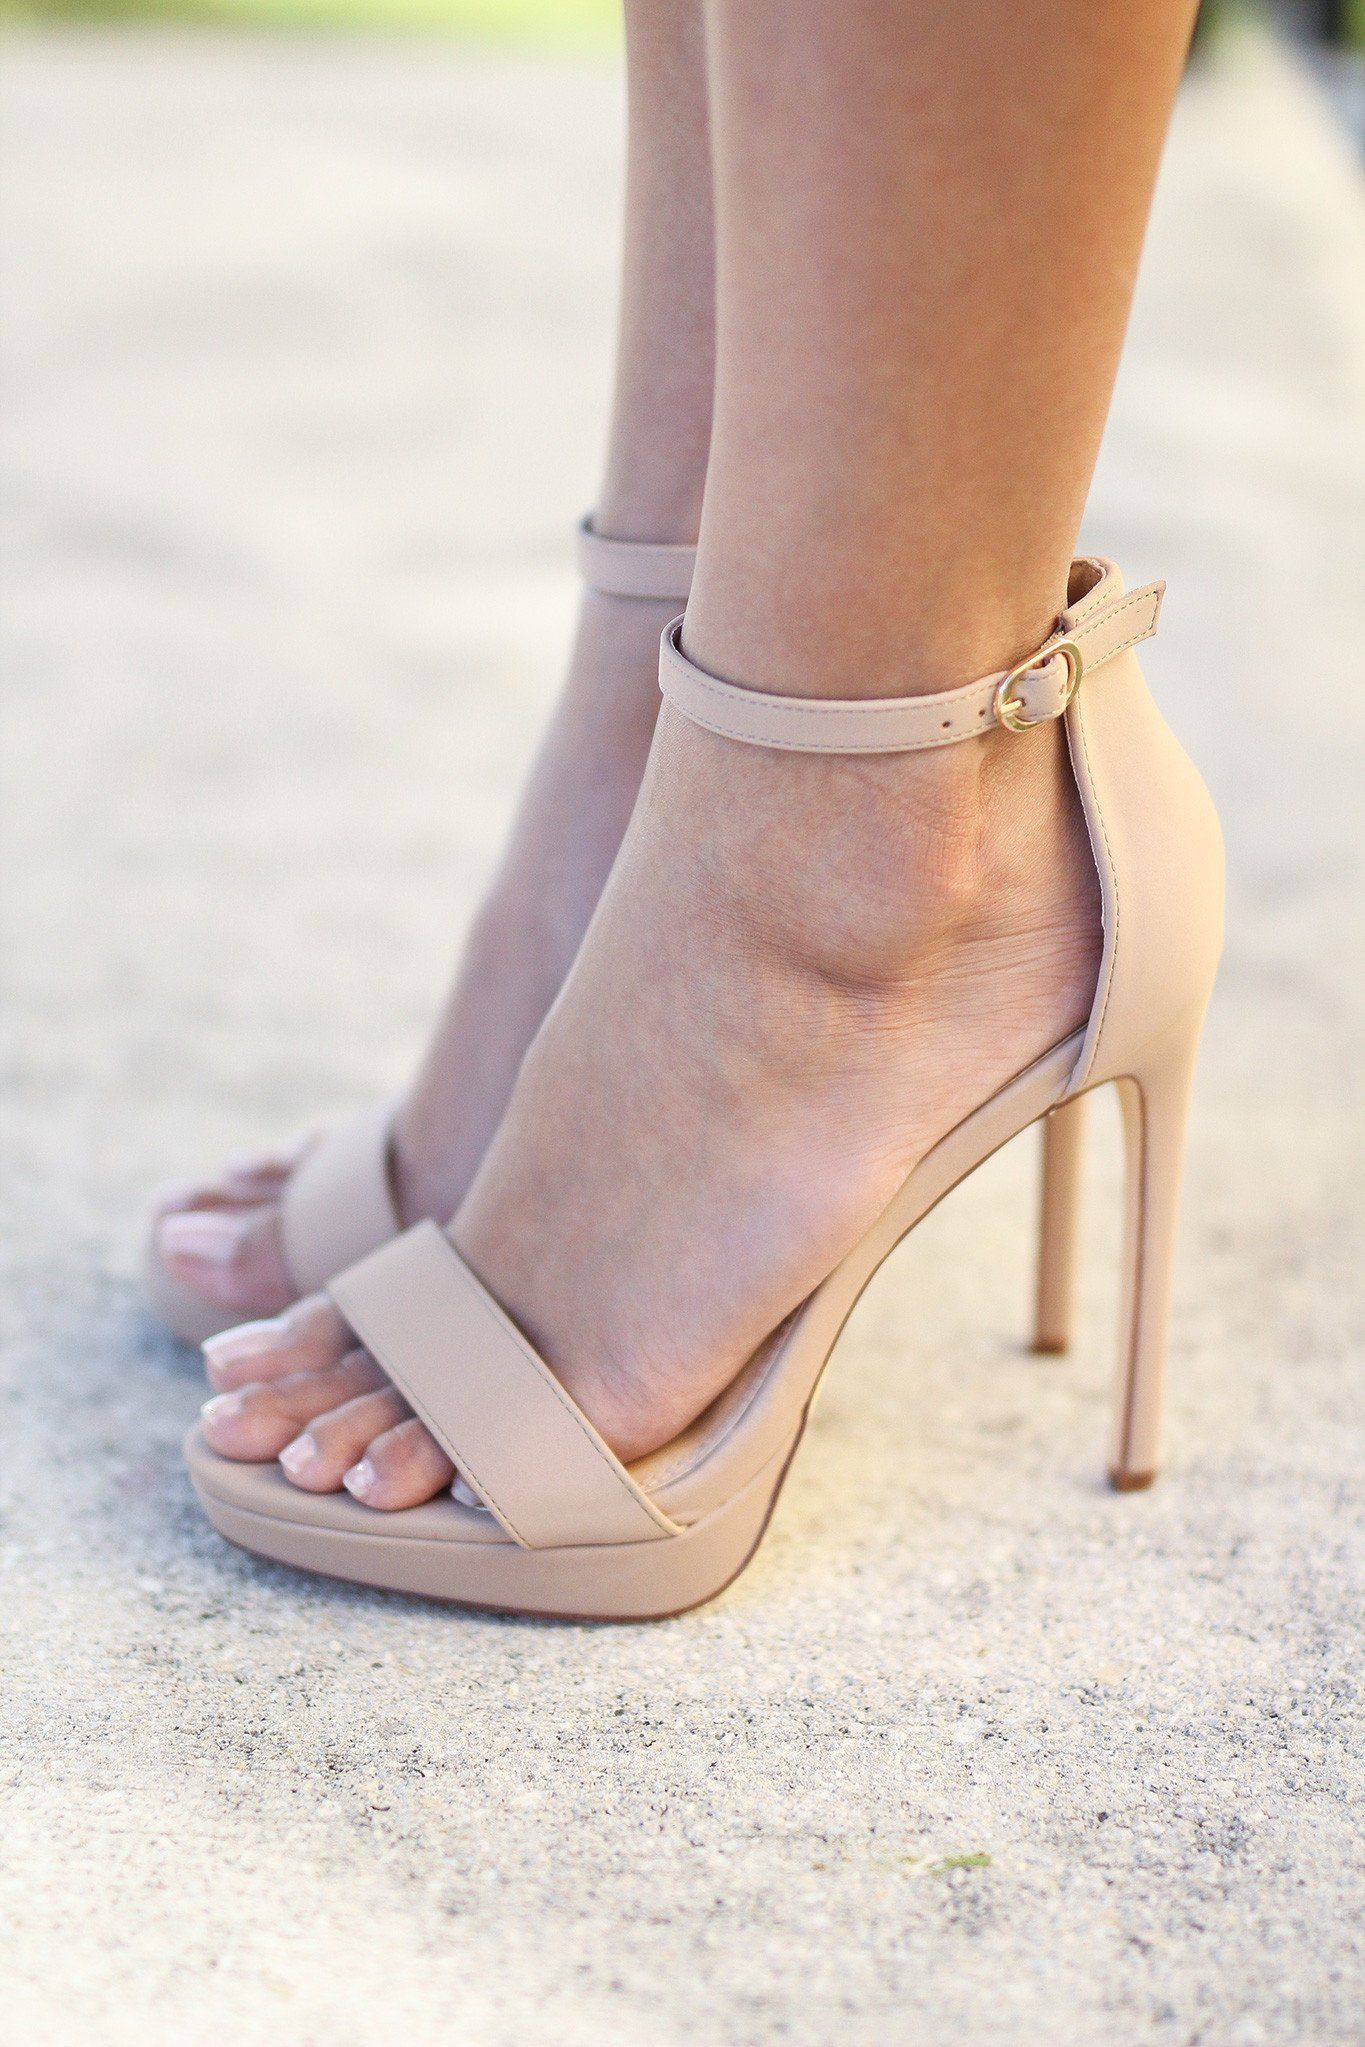 545de31295d Say hello to our NEW heels! Our Nude Ankle Strap Platform Heels are a must  have piece in every girl closet. They are the perfect basic heels that goes  with ...